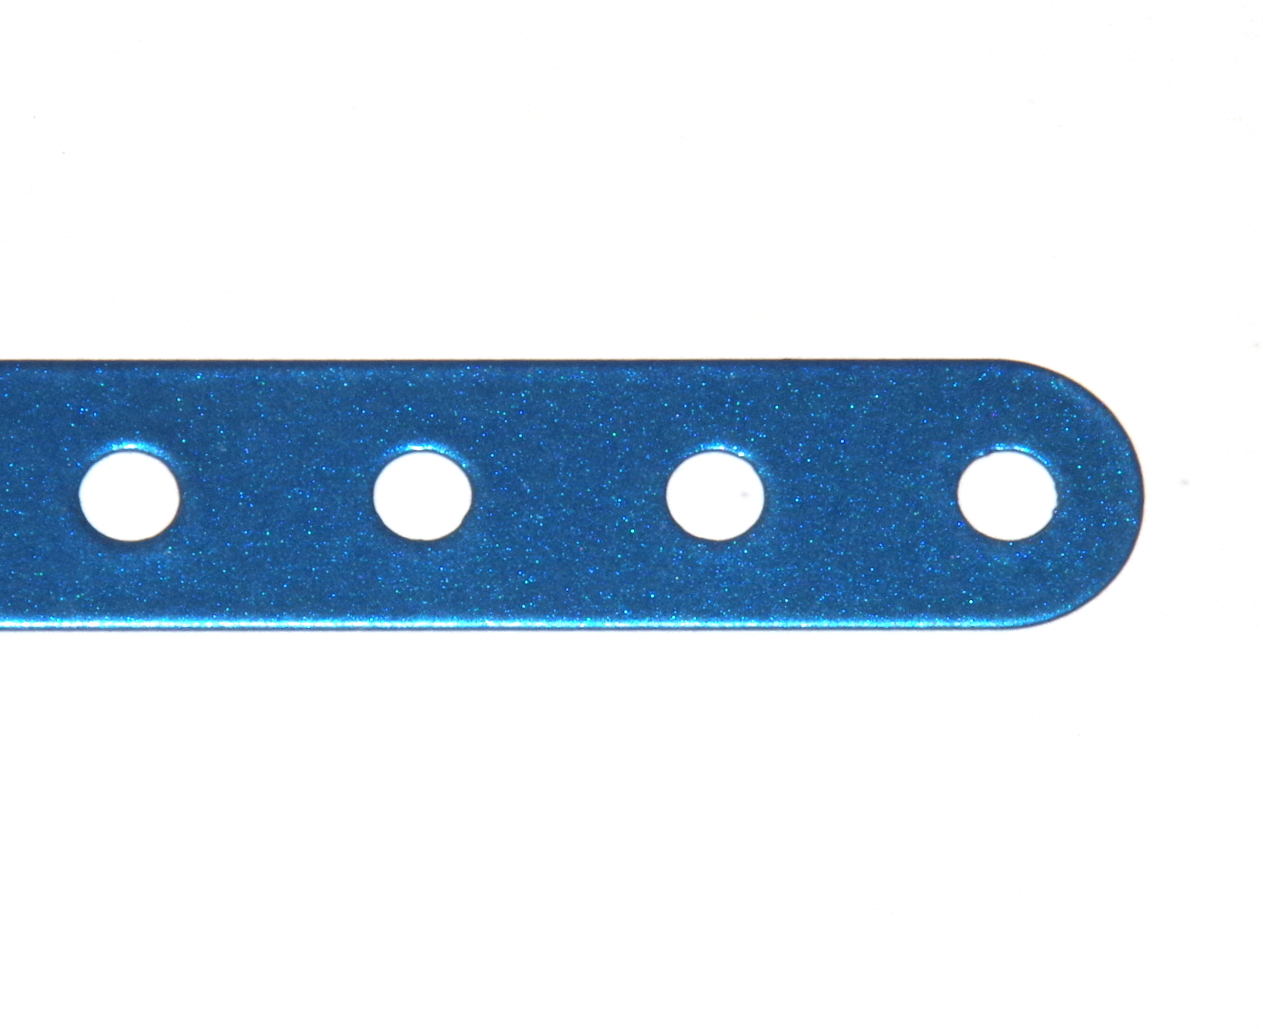 B488 Flexible Strip 7 Hole Blue Original